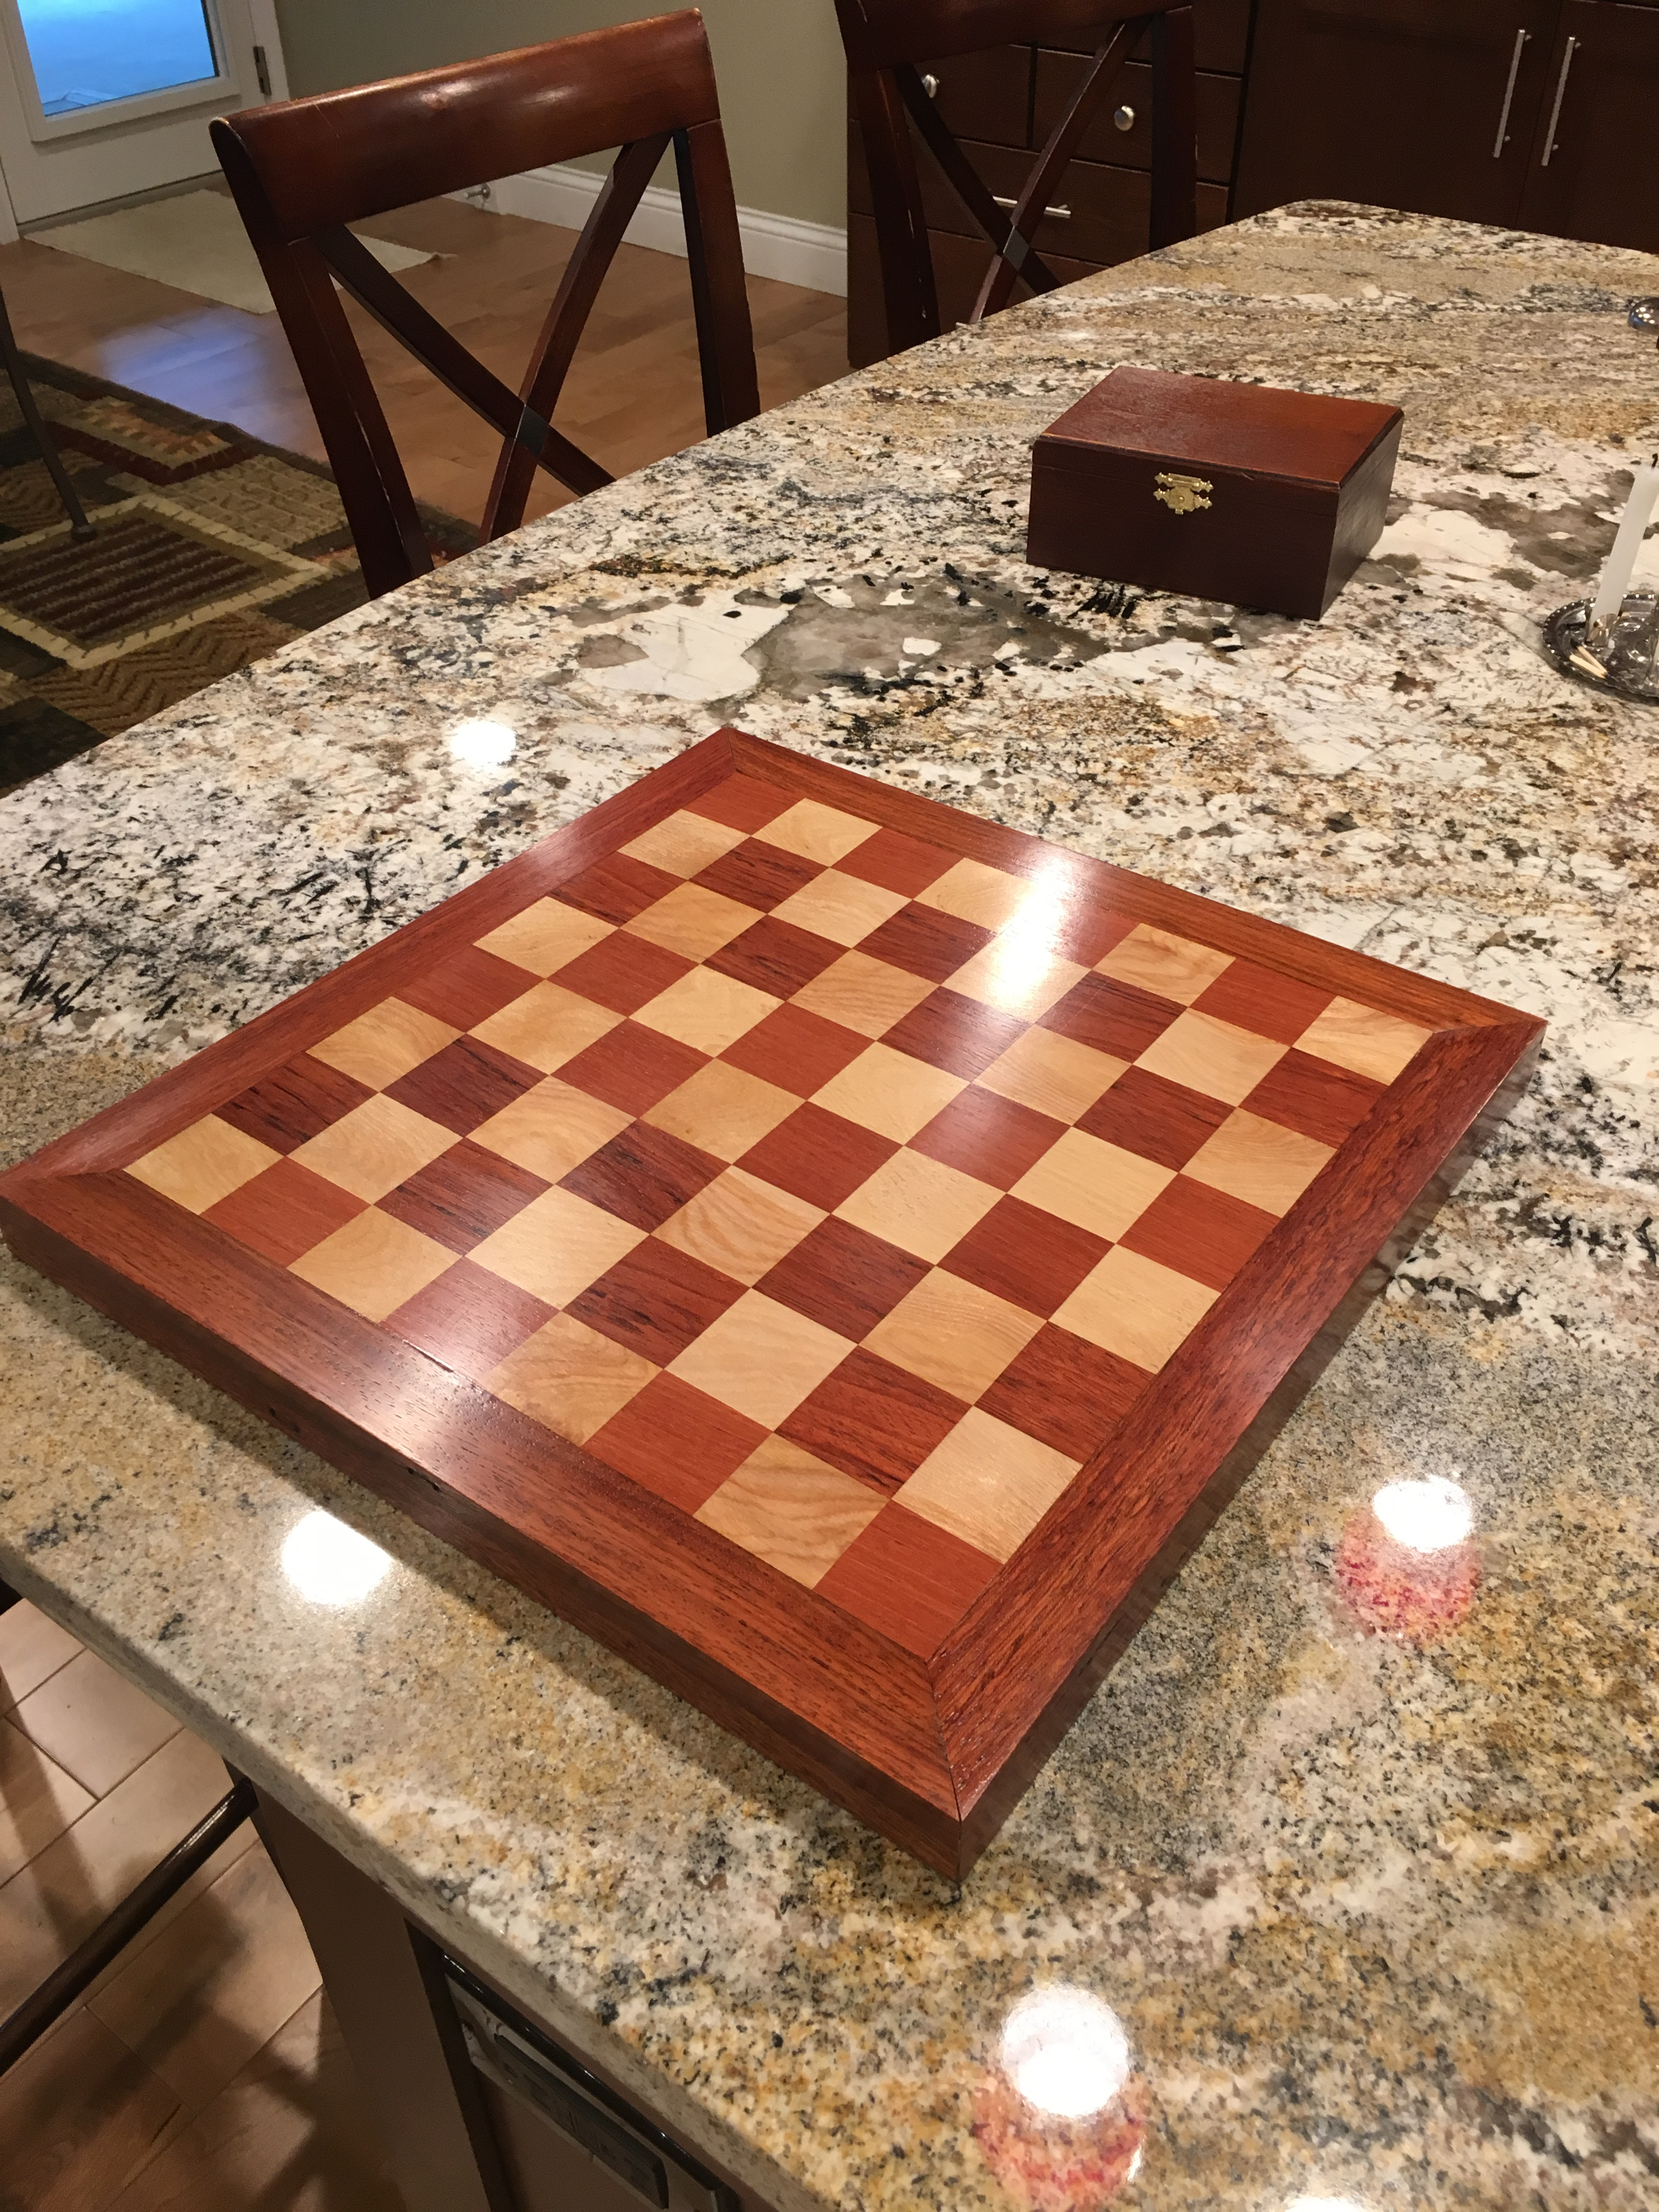 Chessboard by Chay Wesley